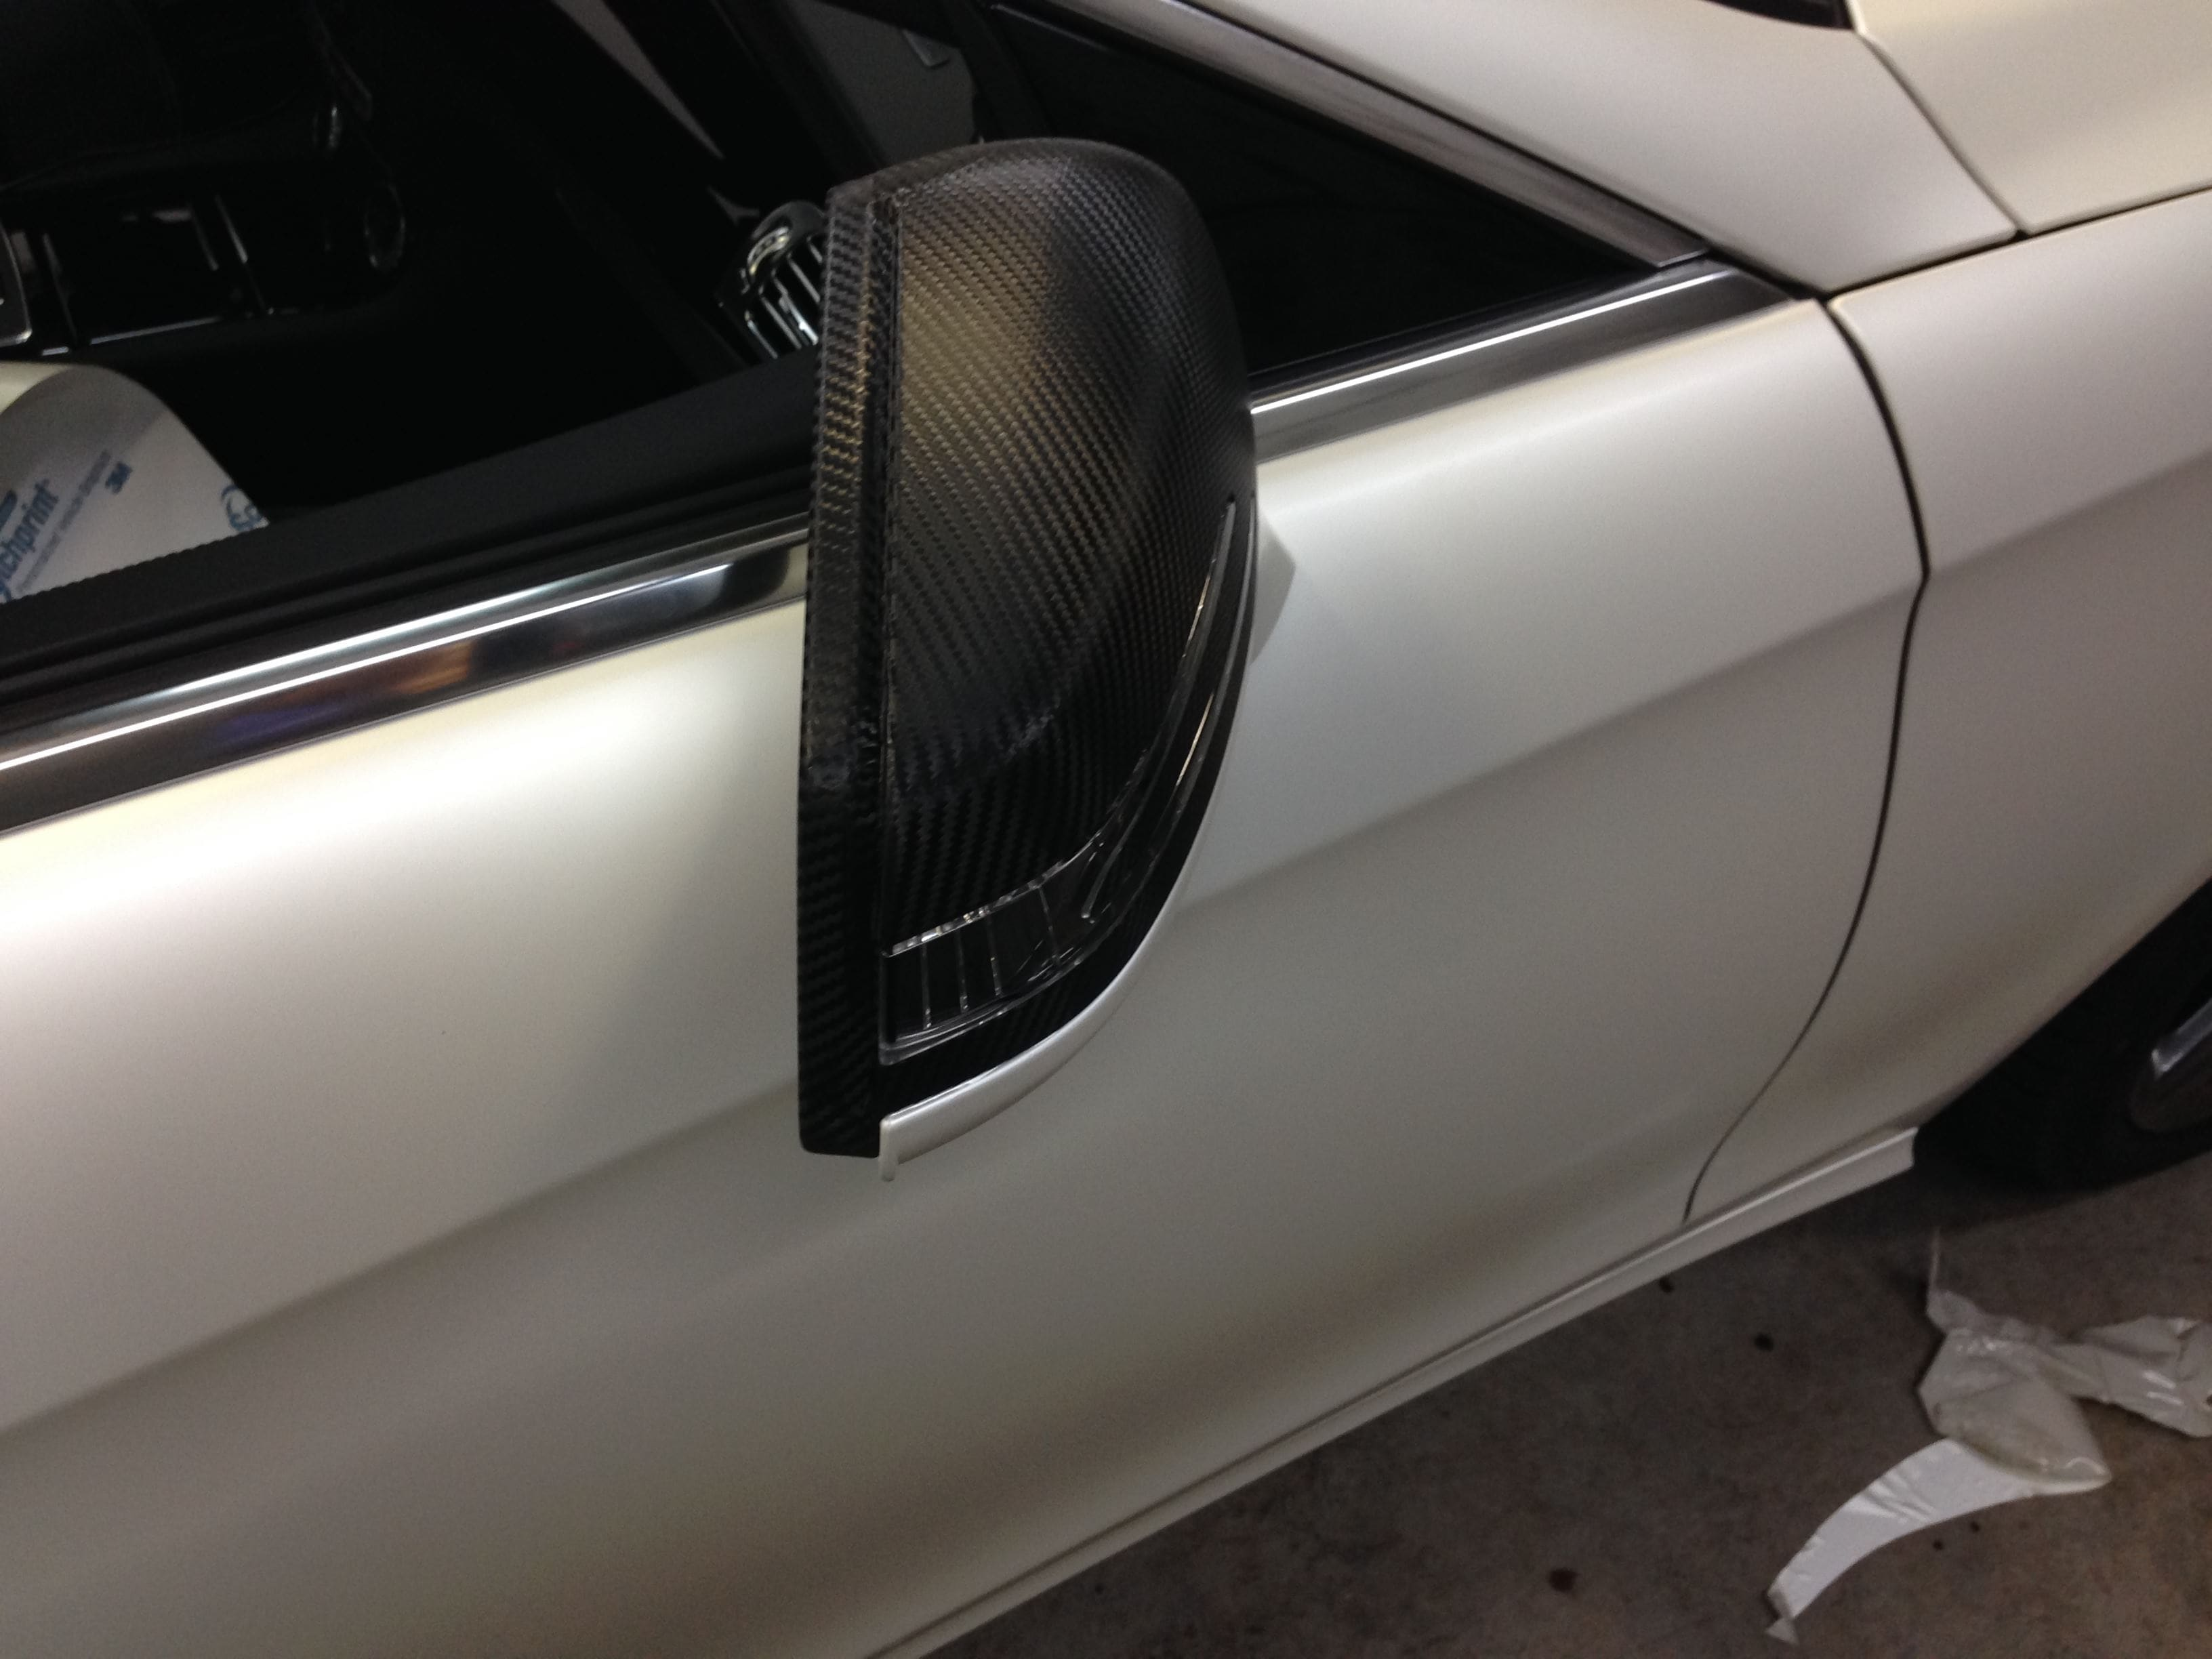 Mercedes CLS met White Satin Pearl Wrap, Carwrapping door Wrapmyride.nu Foto-nr:6188, ©2020